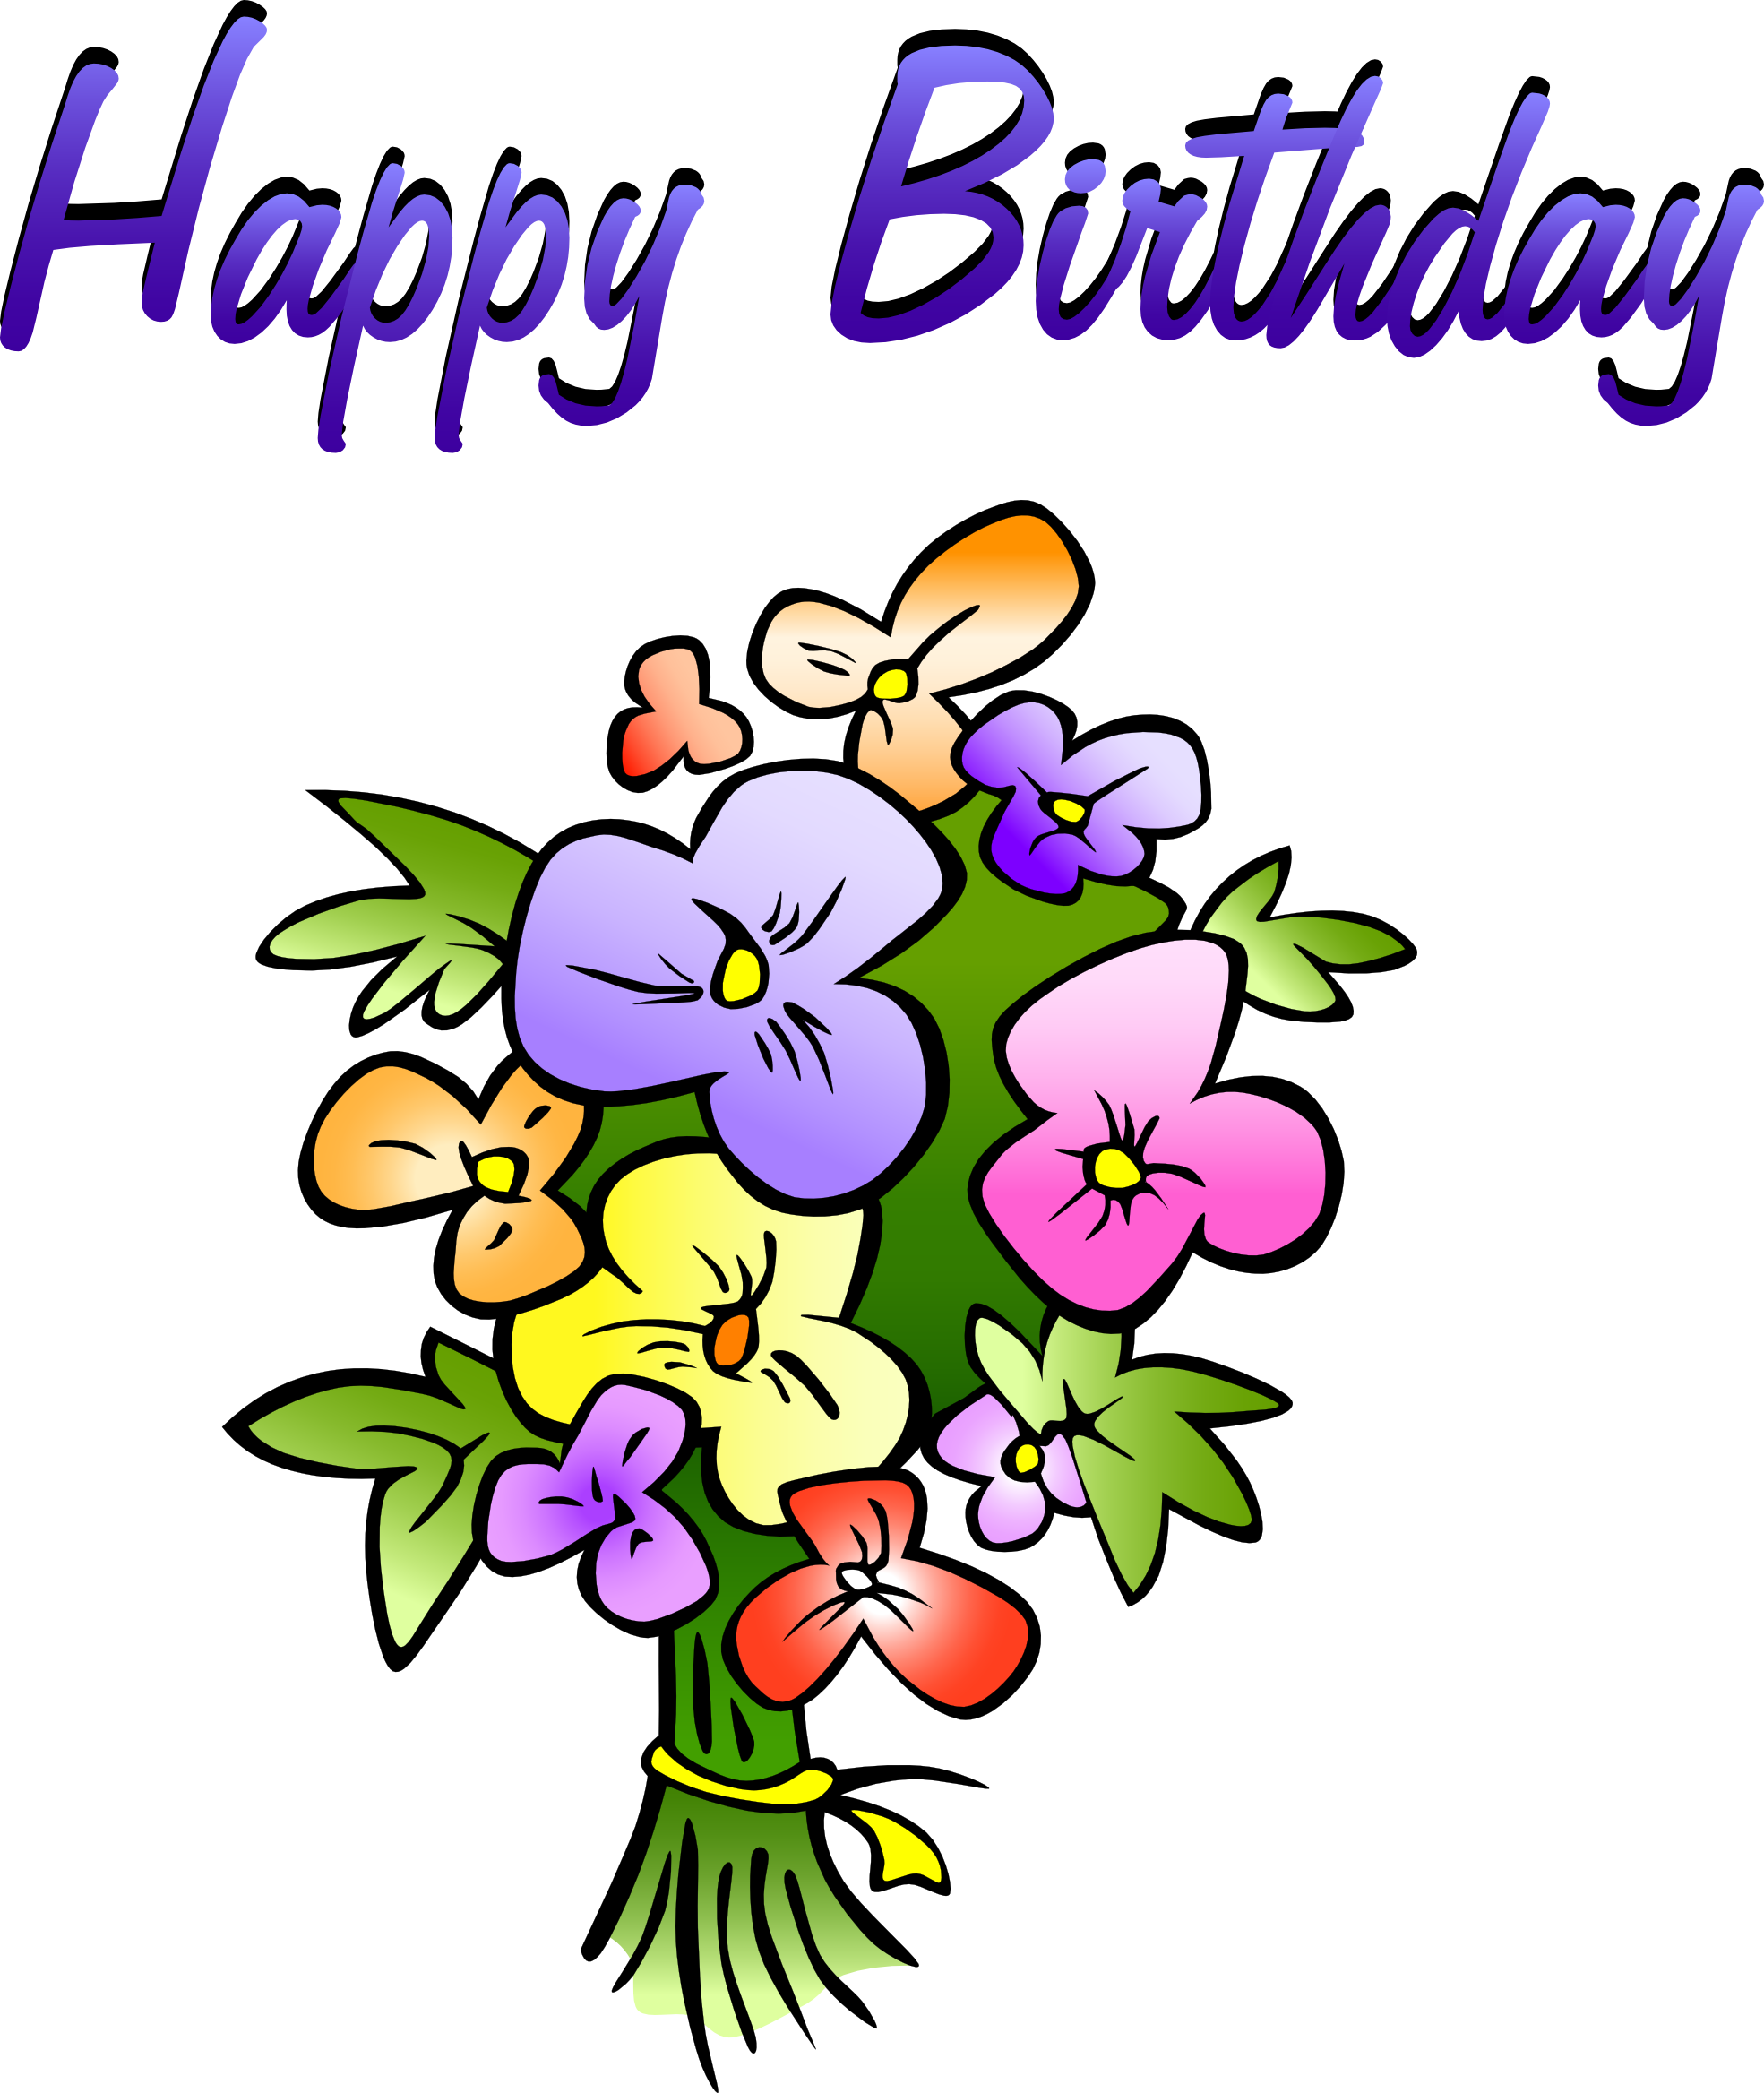 Happy birthday flowers pi. Excited clipart surprise gift